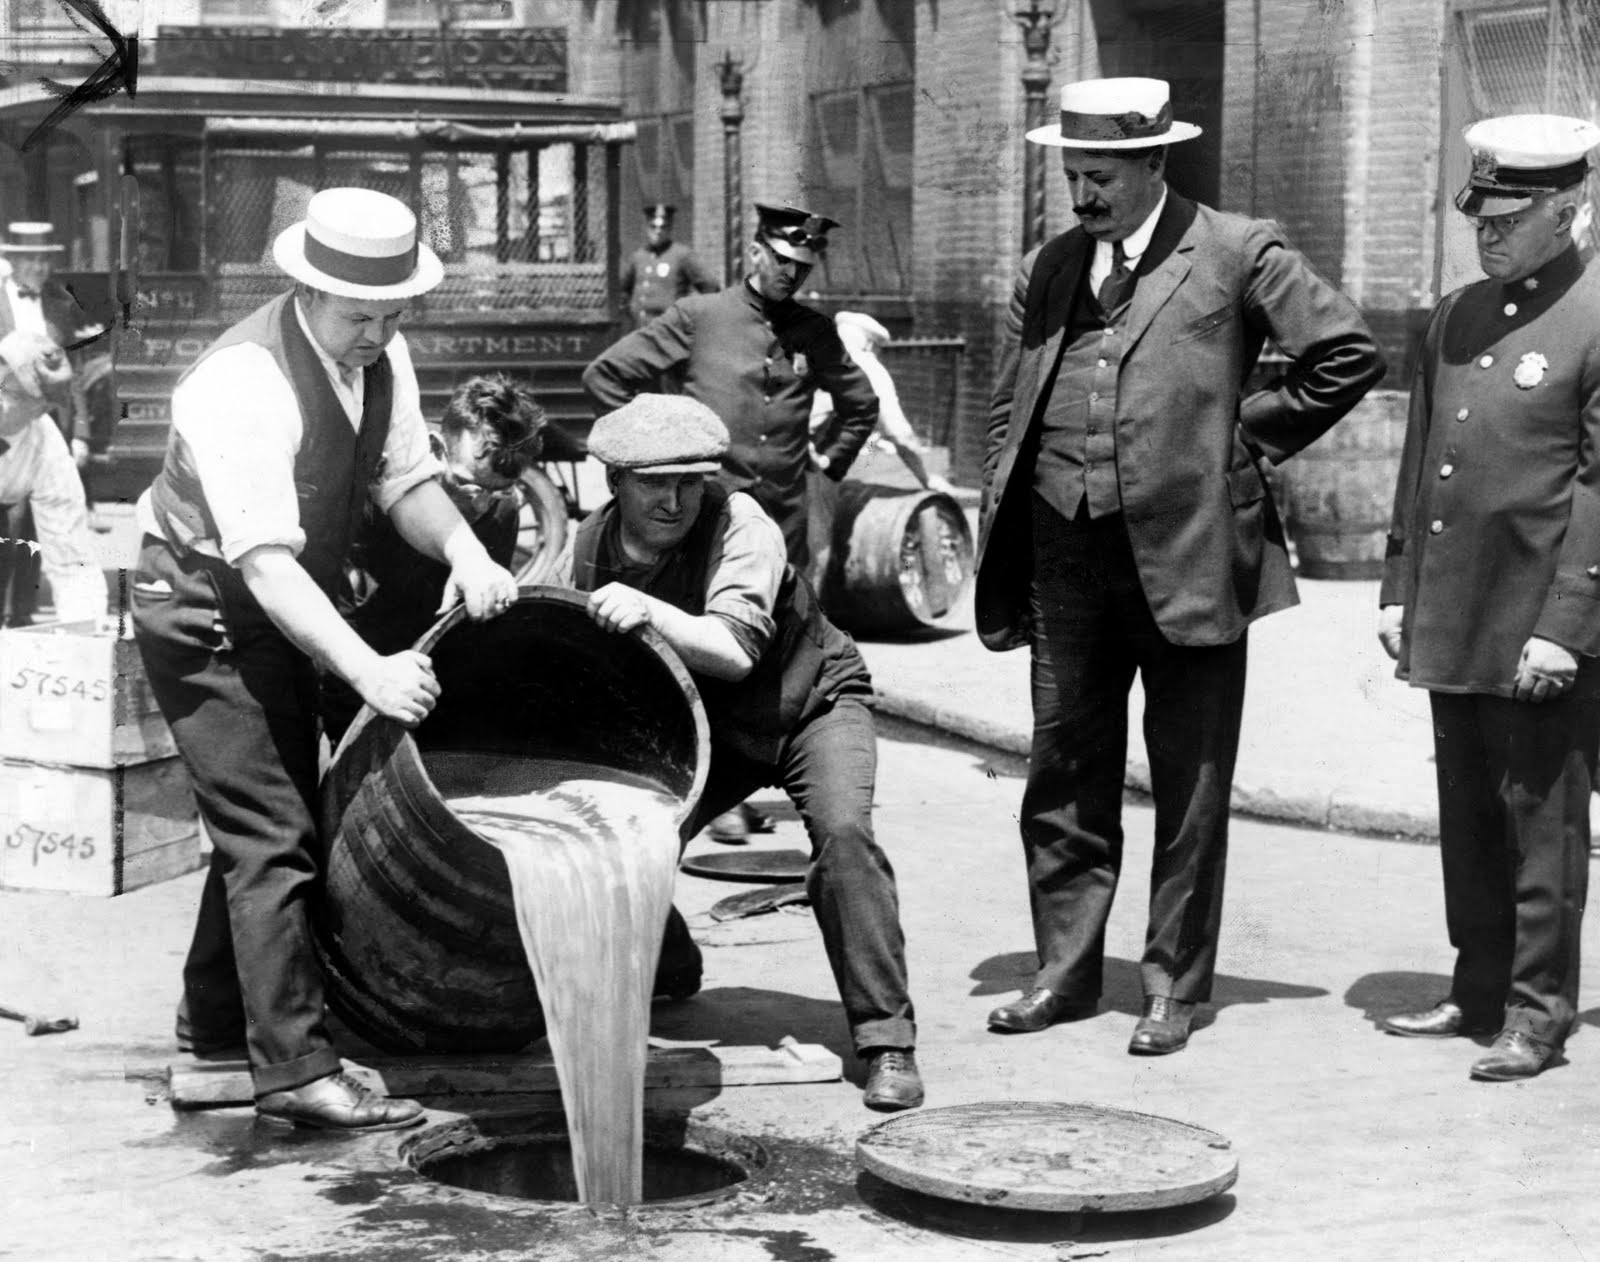 Police pour liquor into sewer following a raid during prohibition